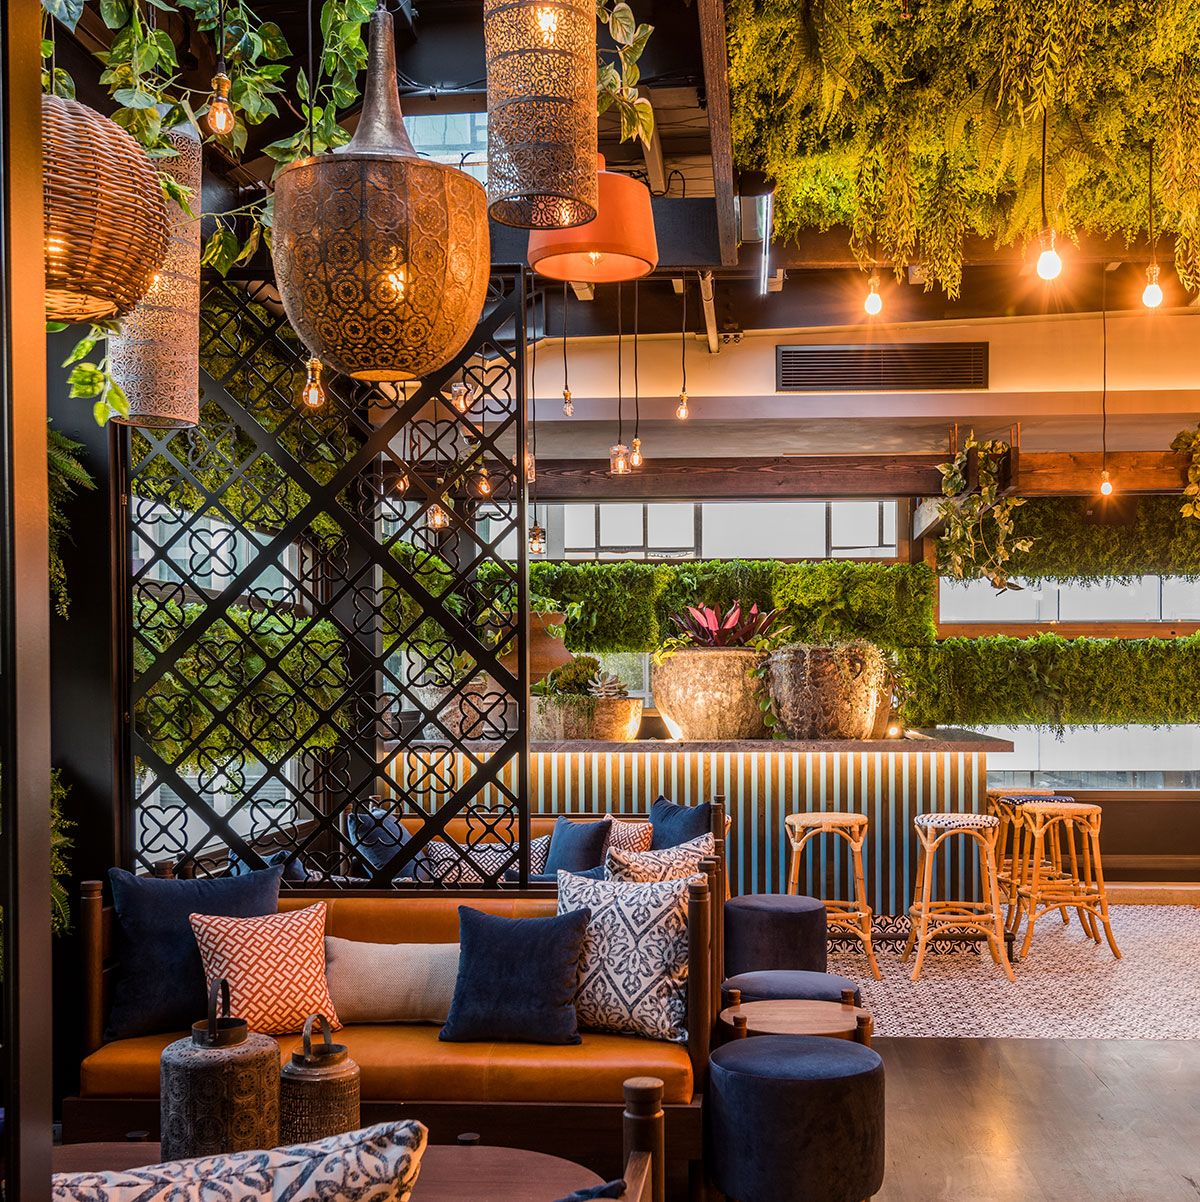 Cultivart Landscape Design Perth: Escape The Concrete Jungle To A Rooftop Garden Sanctuary